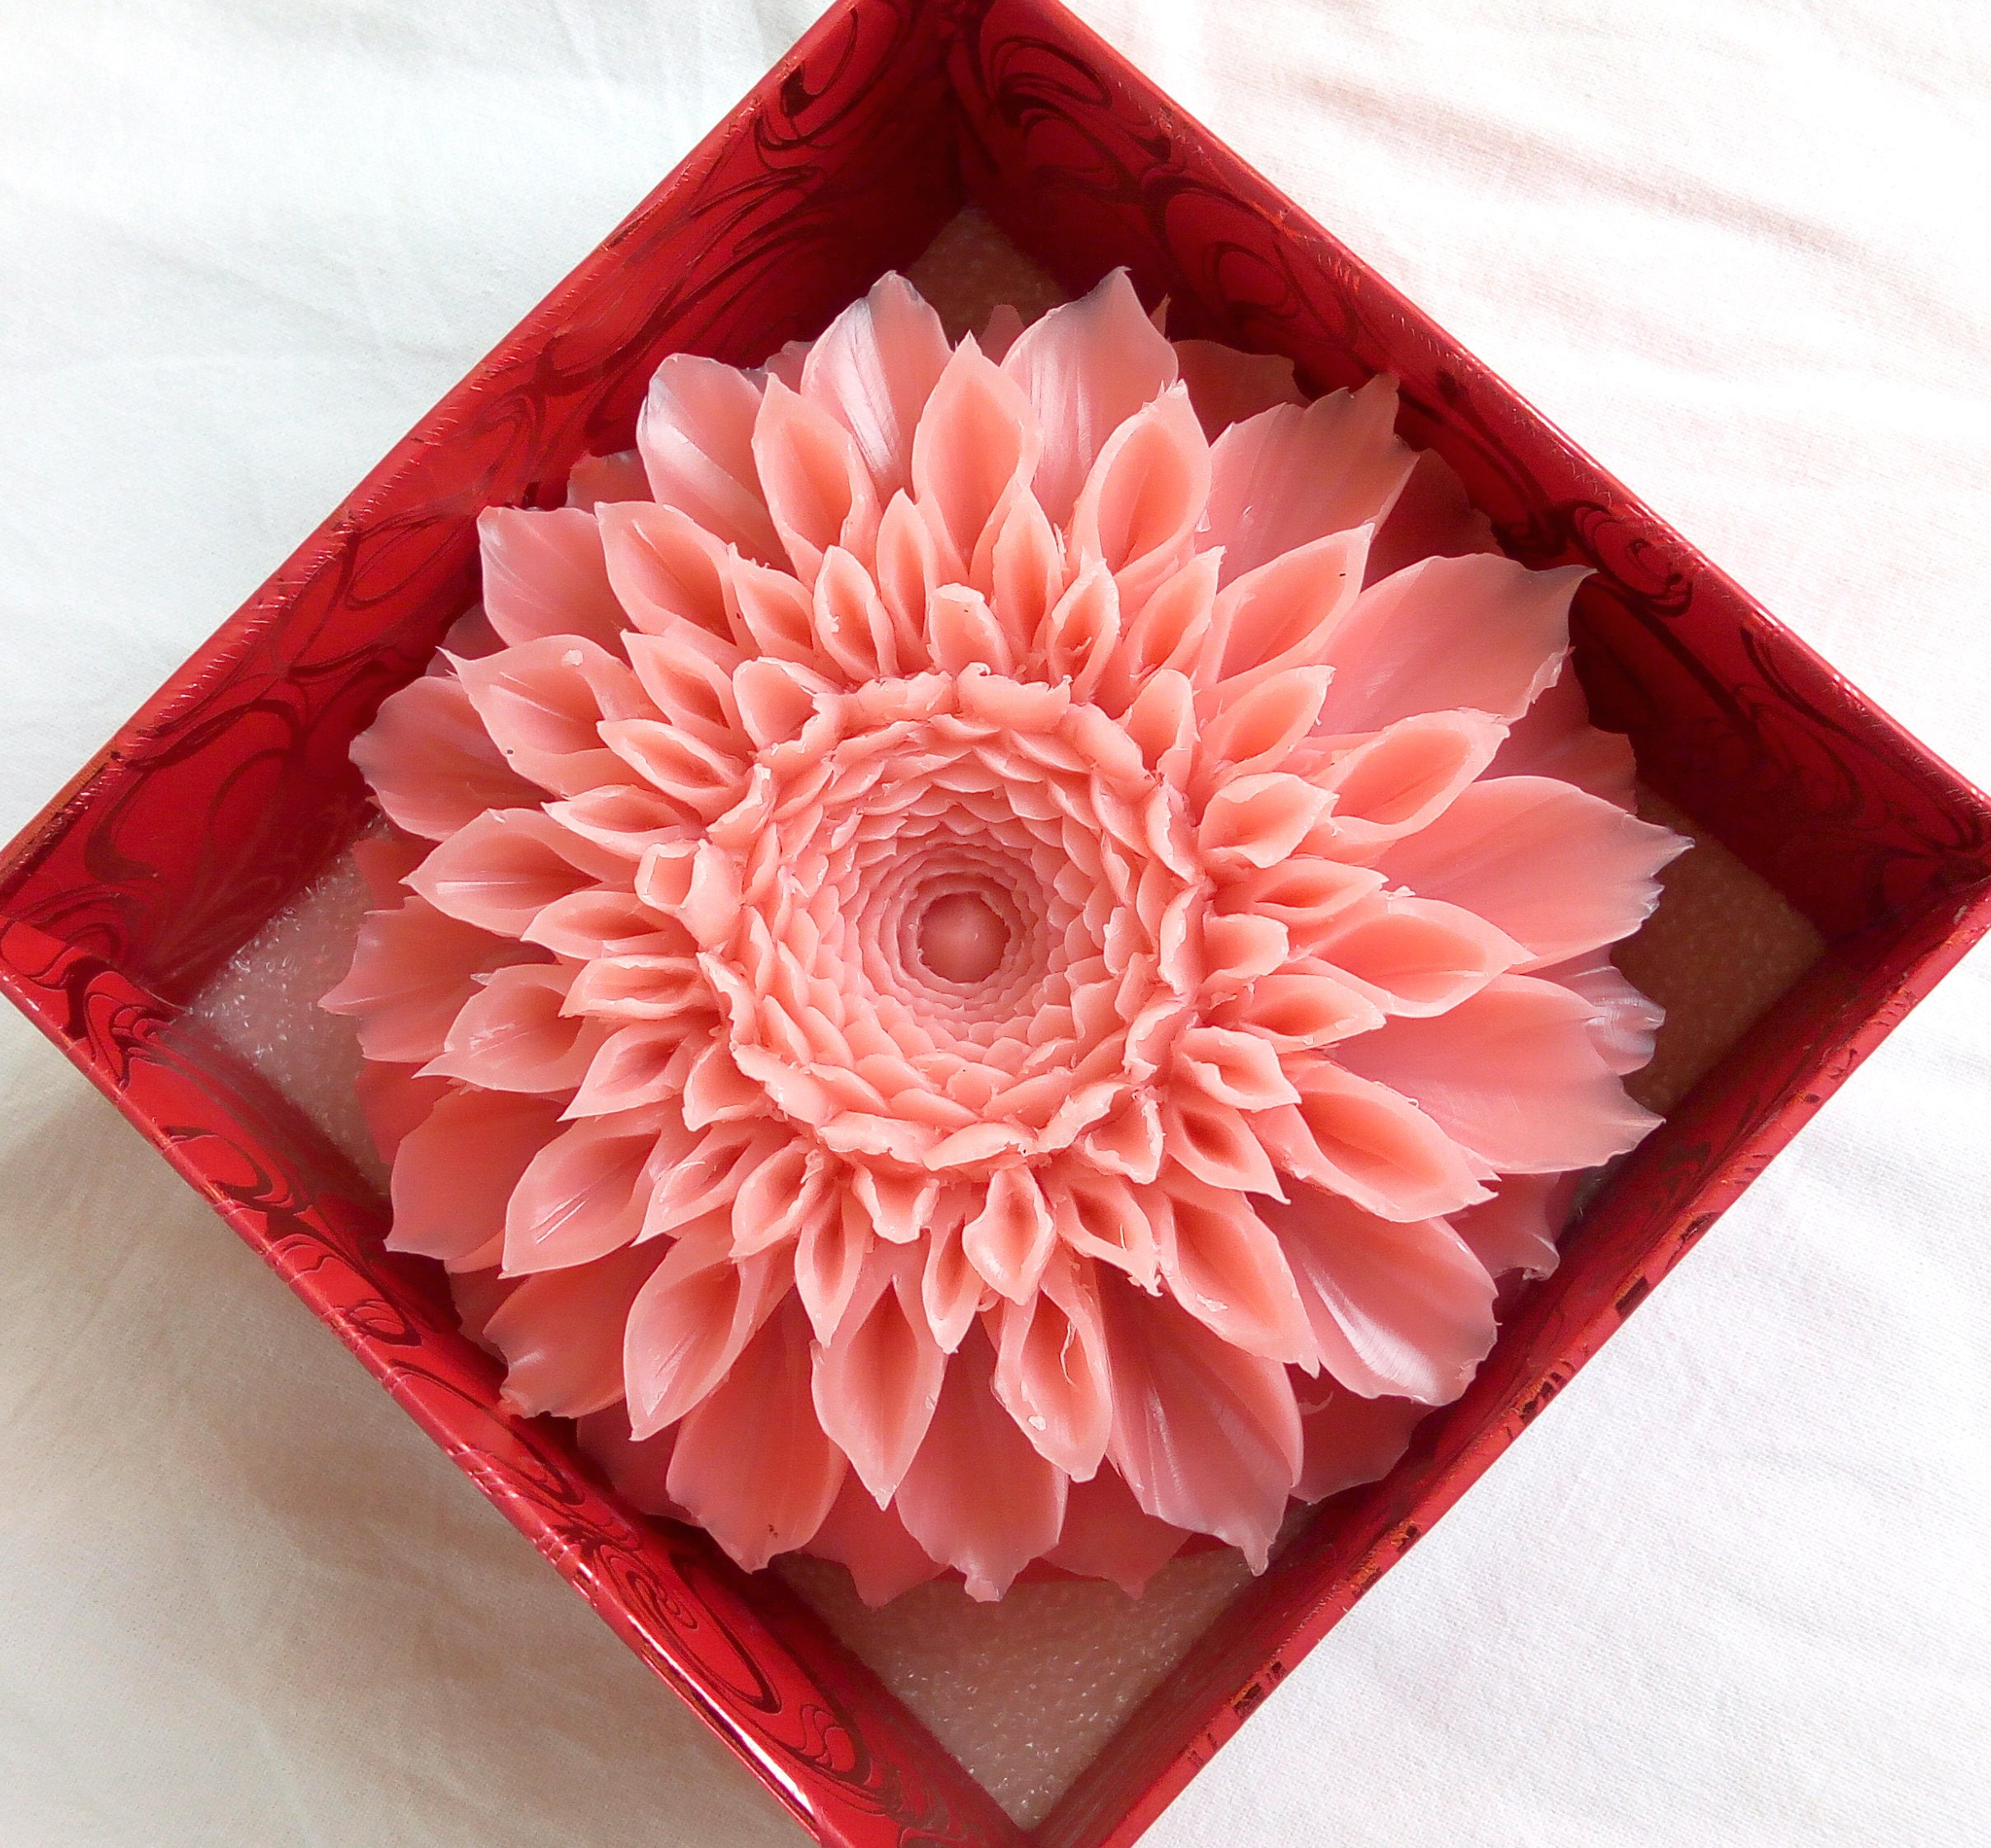 Soap Carving Video Tutorial Soap Carving Flower Etsy